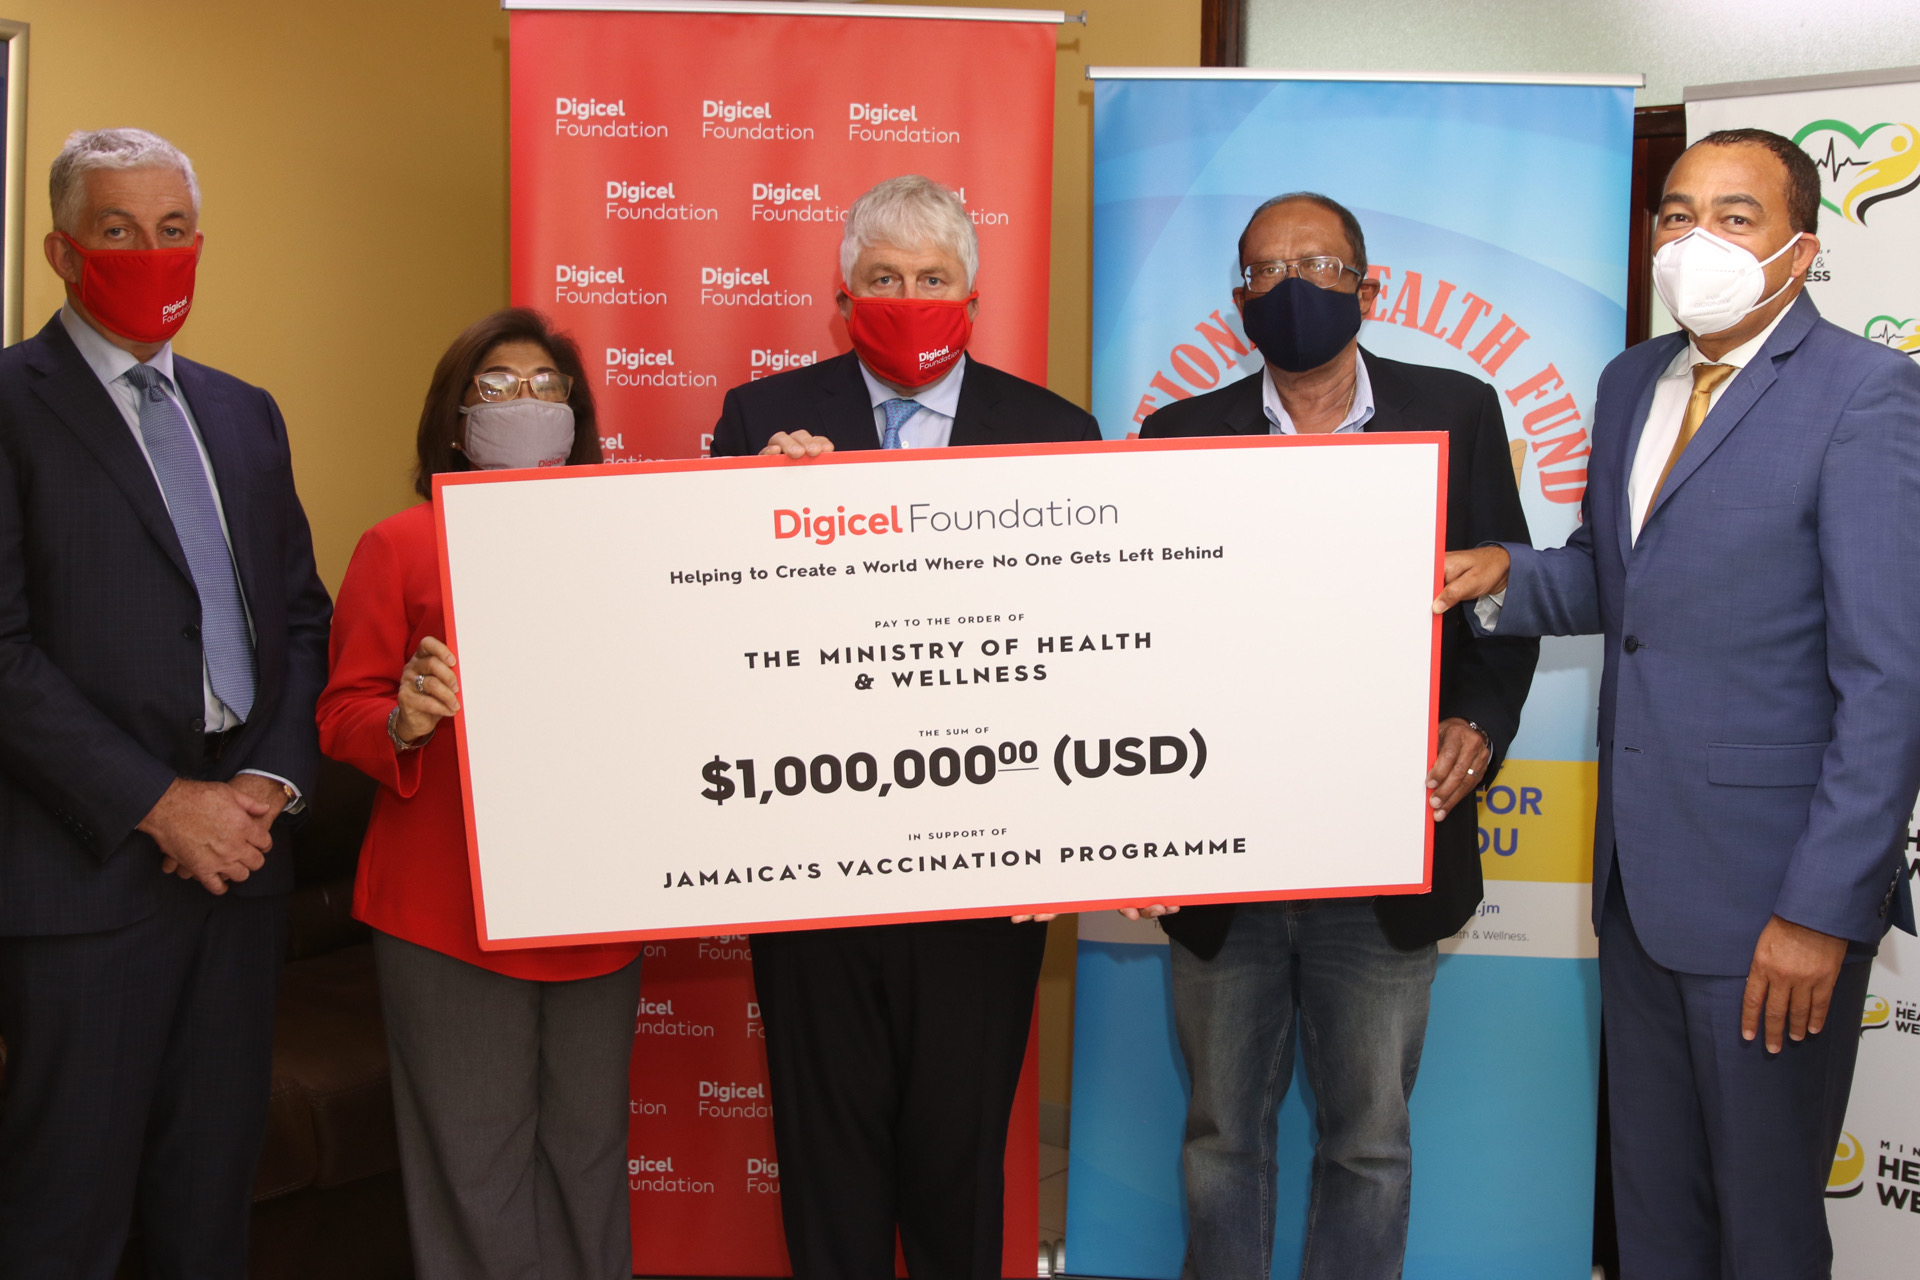 DIGICEL FOUNDATION DONATED US$1 MILLION TO THE NHF TO ASSIST IN THE PURCHASE OF VACCINES